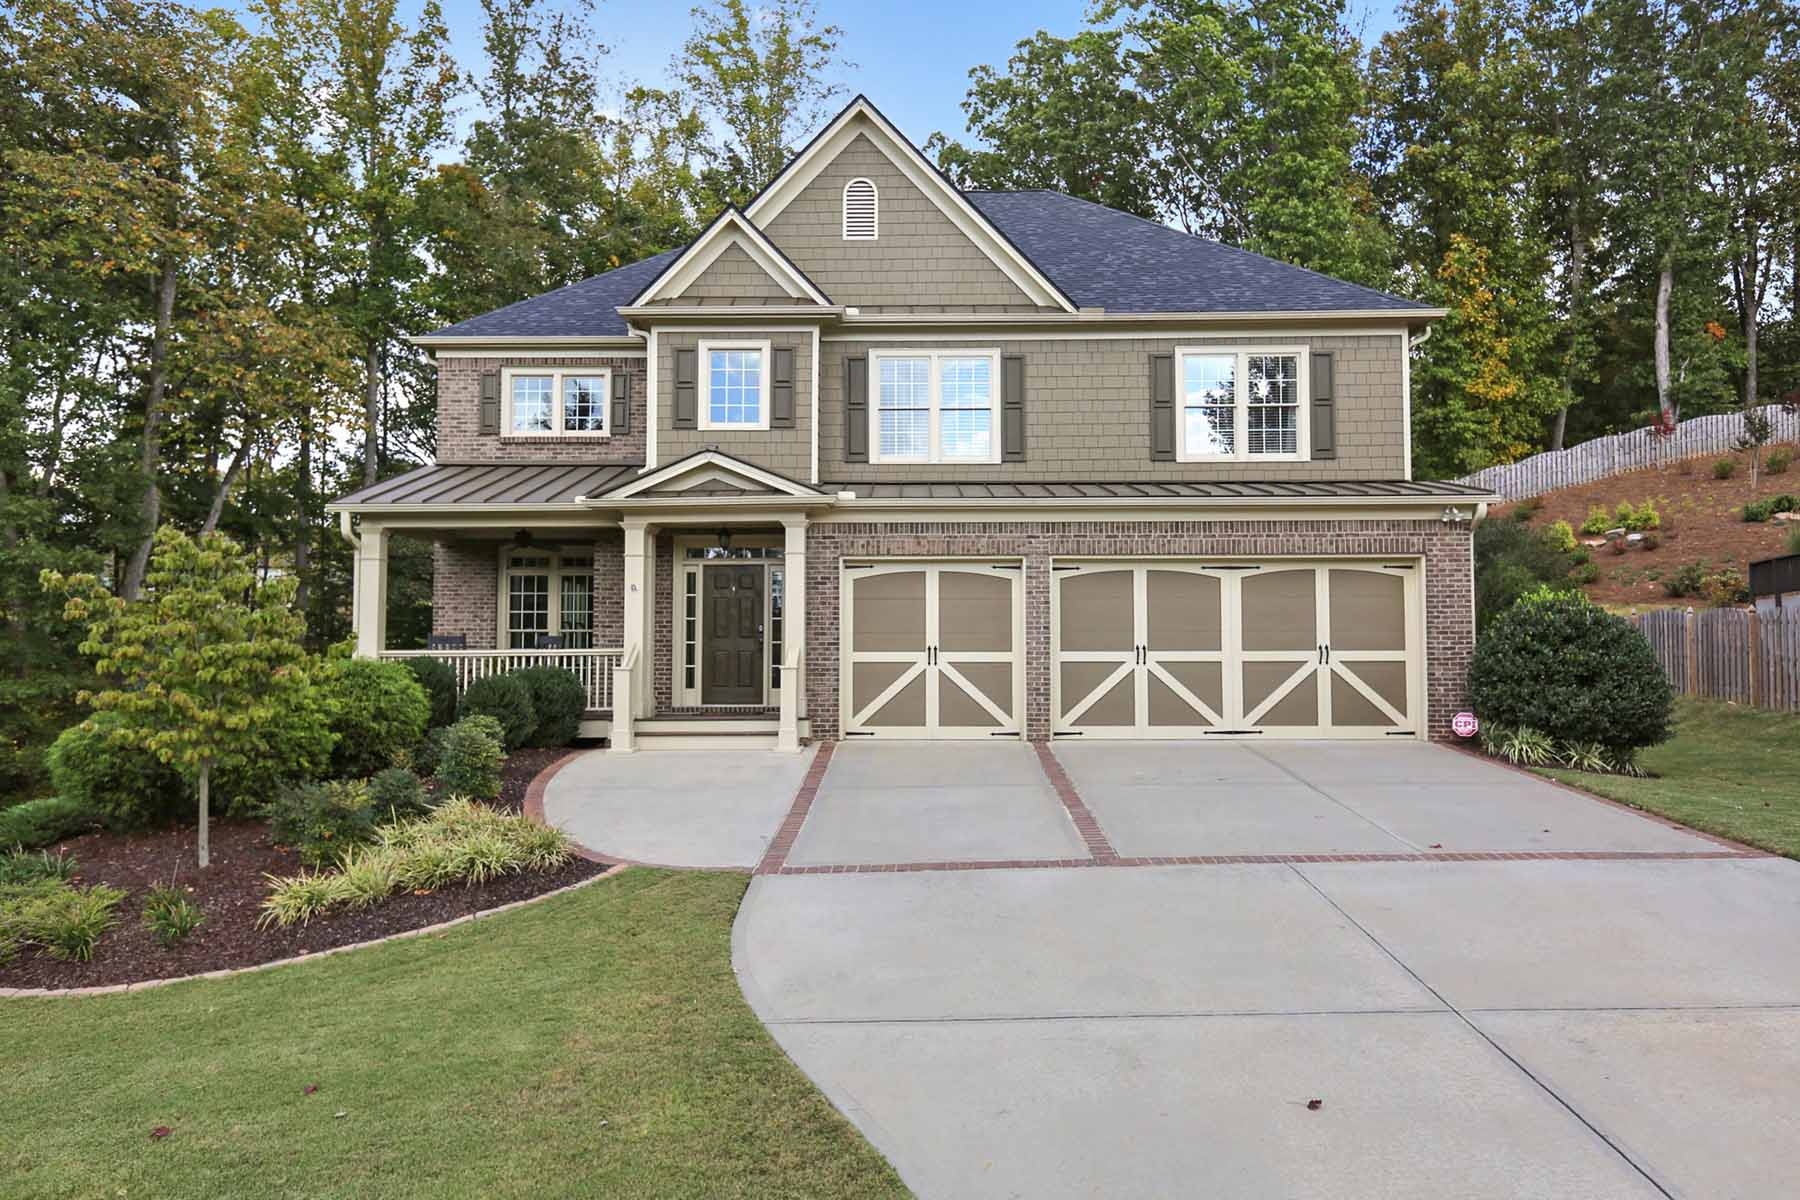 Villa per Vendita alle ore Provence in South Forsyth 2710 Monet Drive Cumming, Georgia, 30041 Stati Uniti